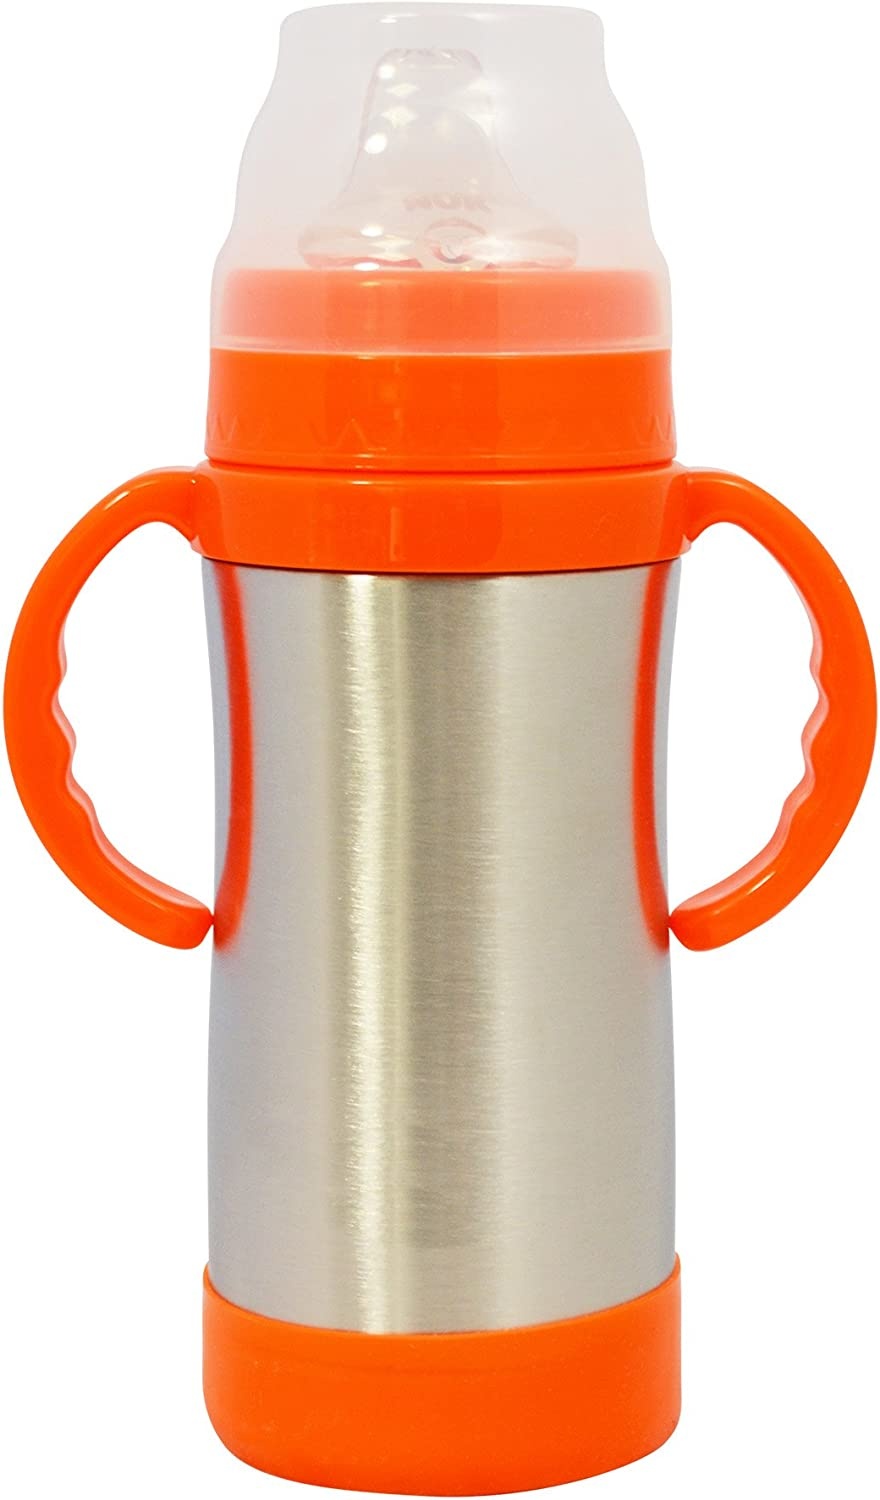 EcoVessel Washington Mall Sippy Kids Stainless Bottle Steel Water Popular shop is the lowest price challenge